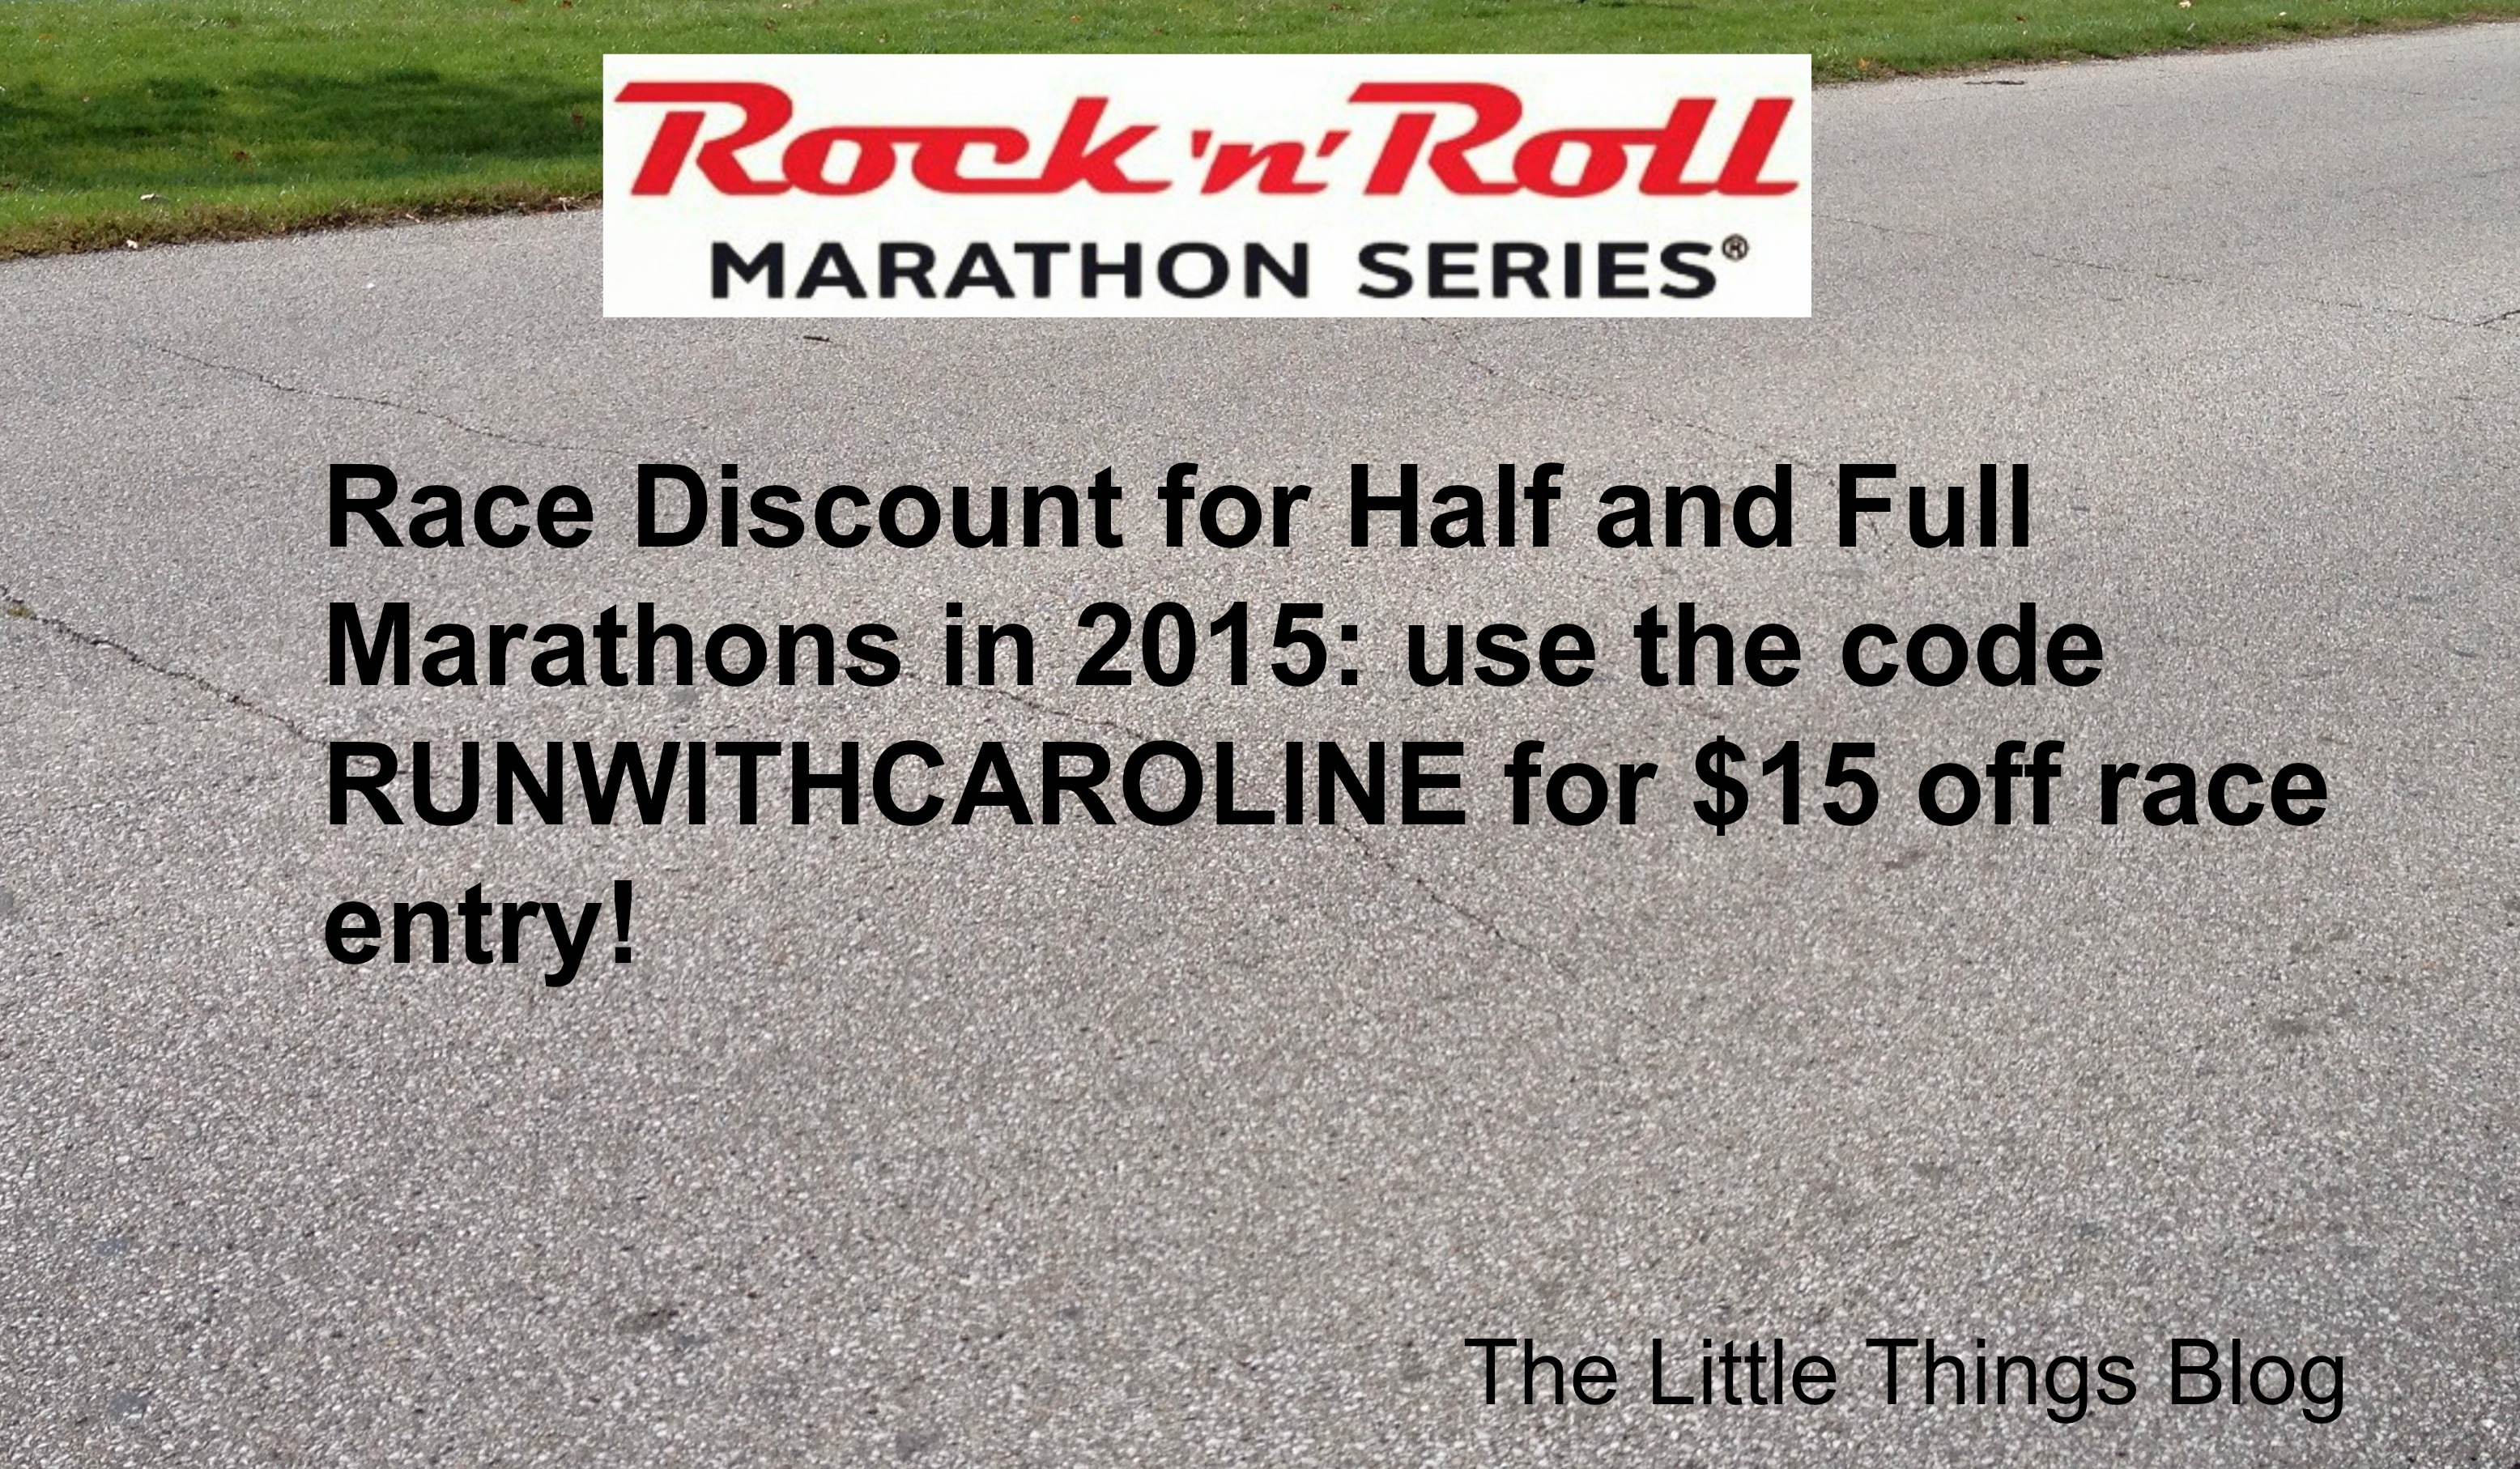 RocknRoll Marathon Series Promo Codes in December are updated and verified. Today's top RocknRoll Marathon Series Promo Code: Special Offer! $10 Off One Open Rock N Roll Marathon Or Half Marathon Event.